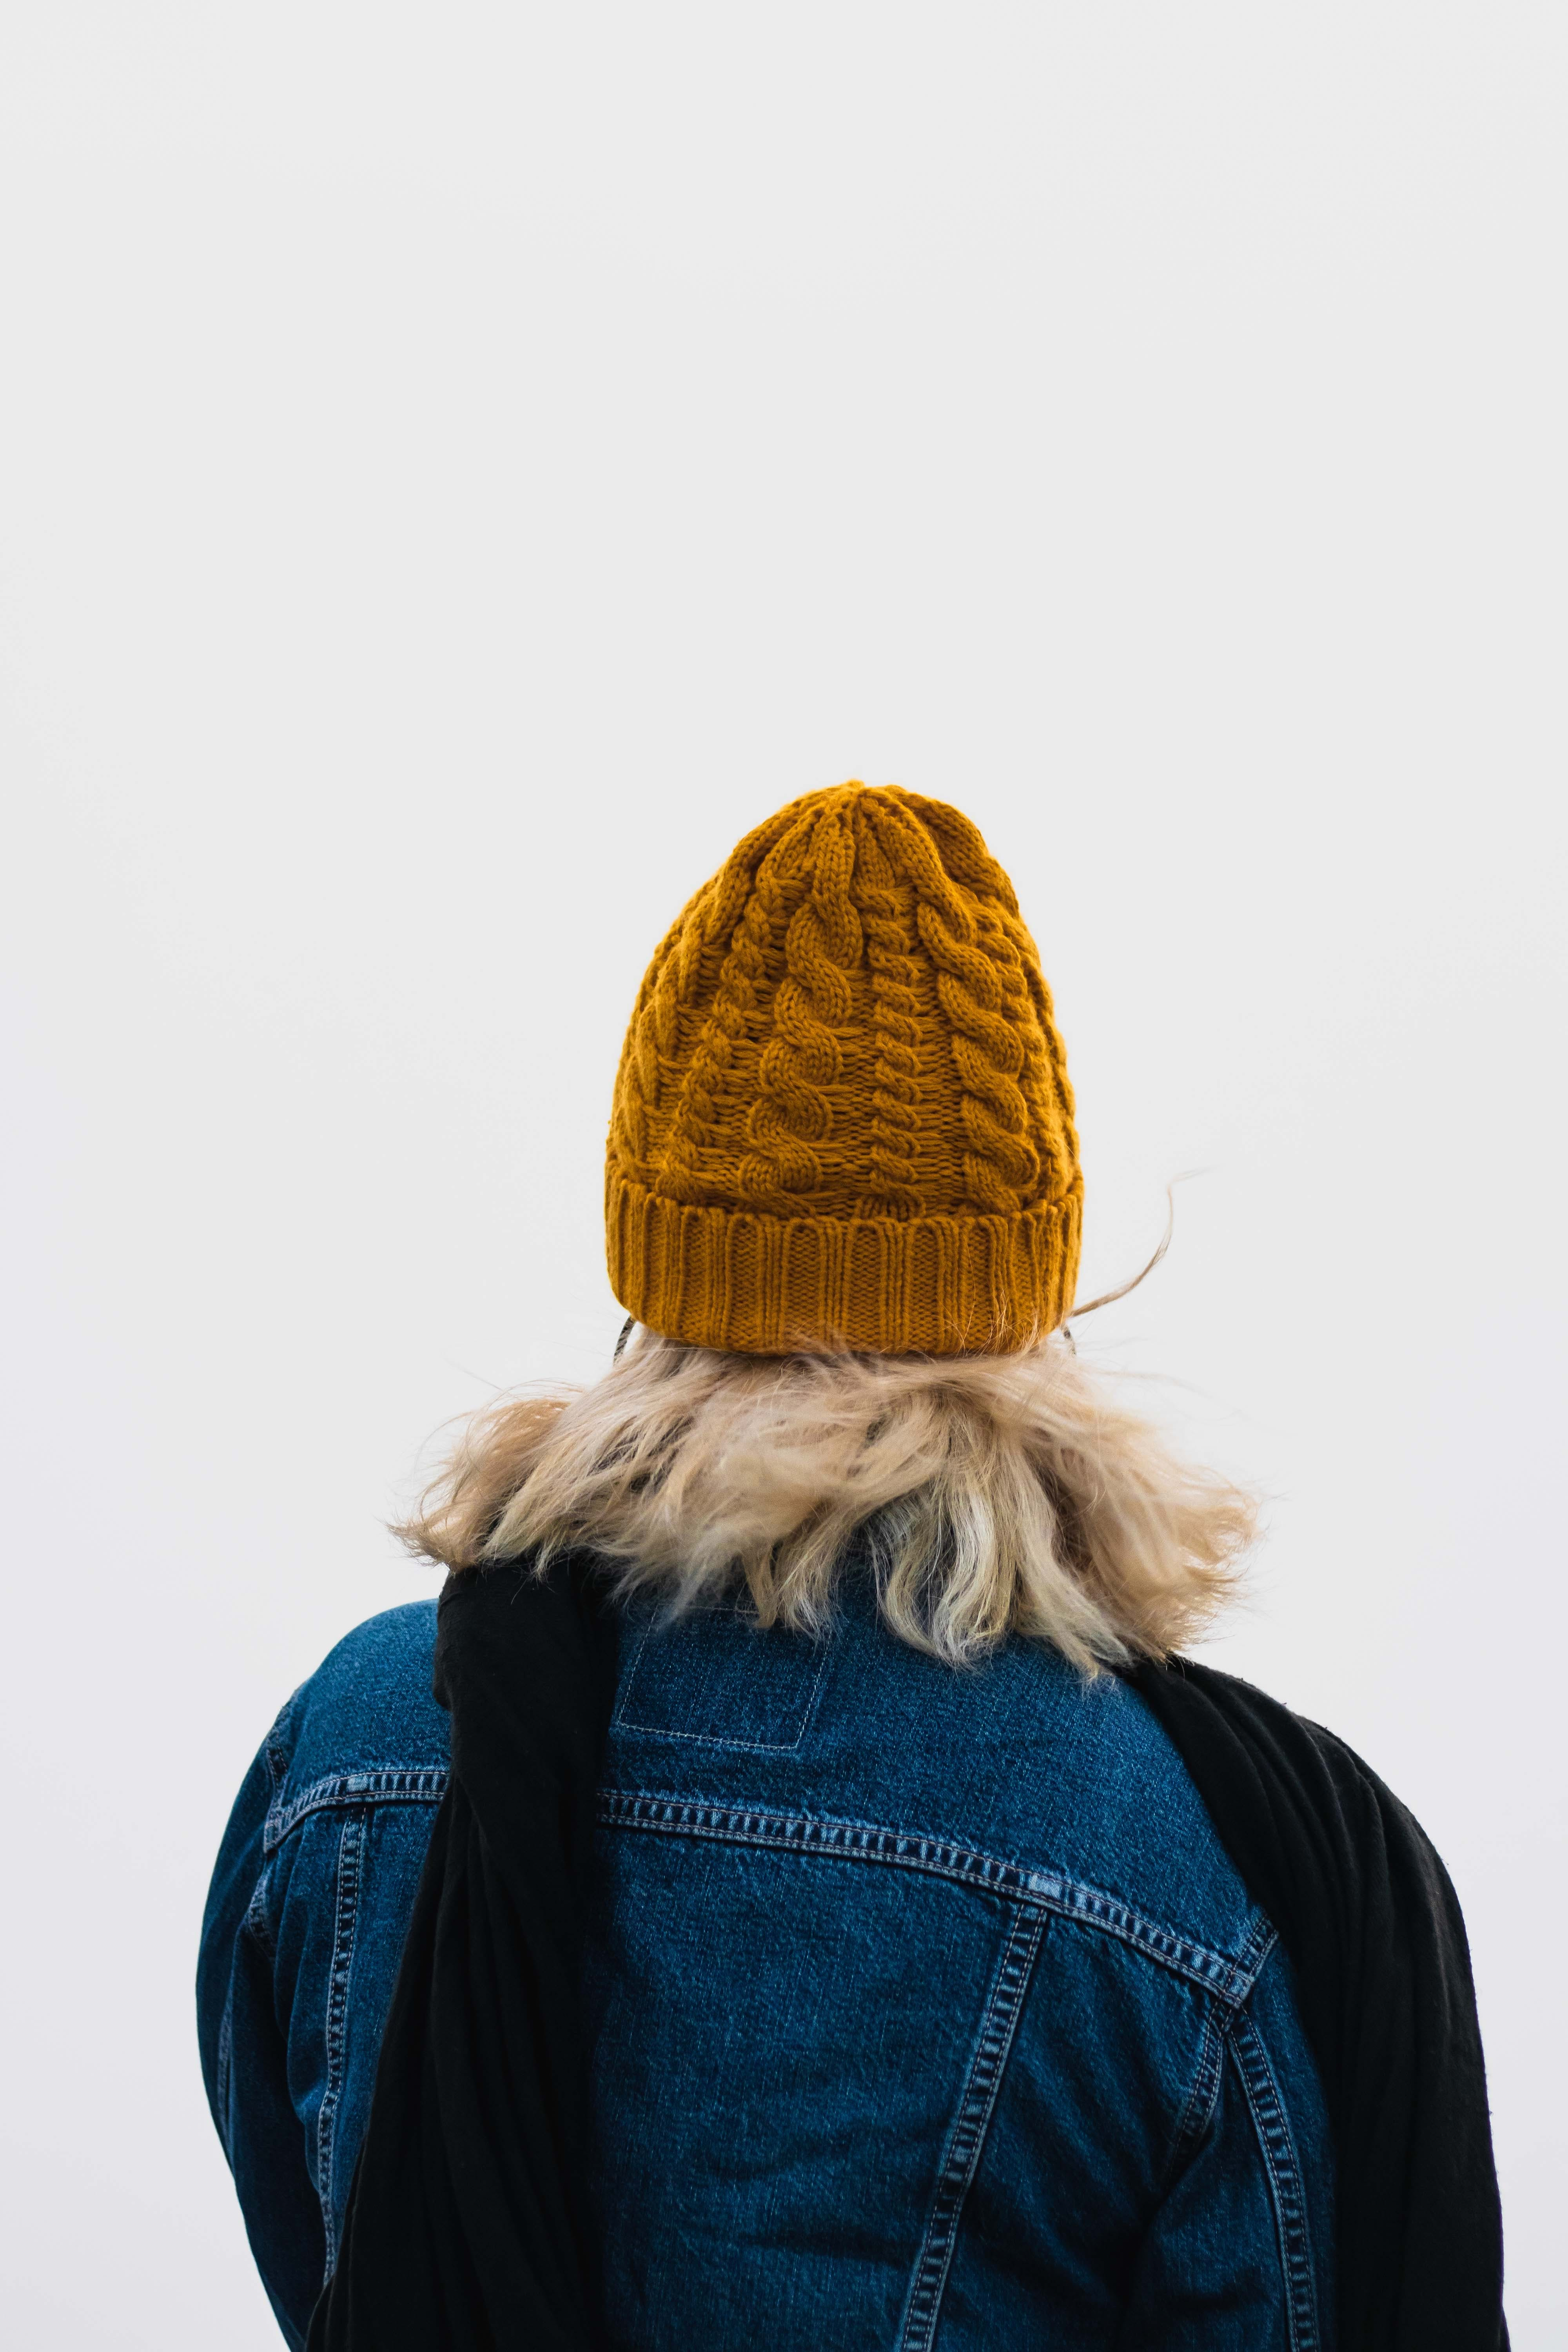 Person Wearing Blue Denim Jacket and Orange Hat Standing and Facing Back